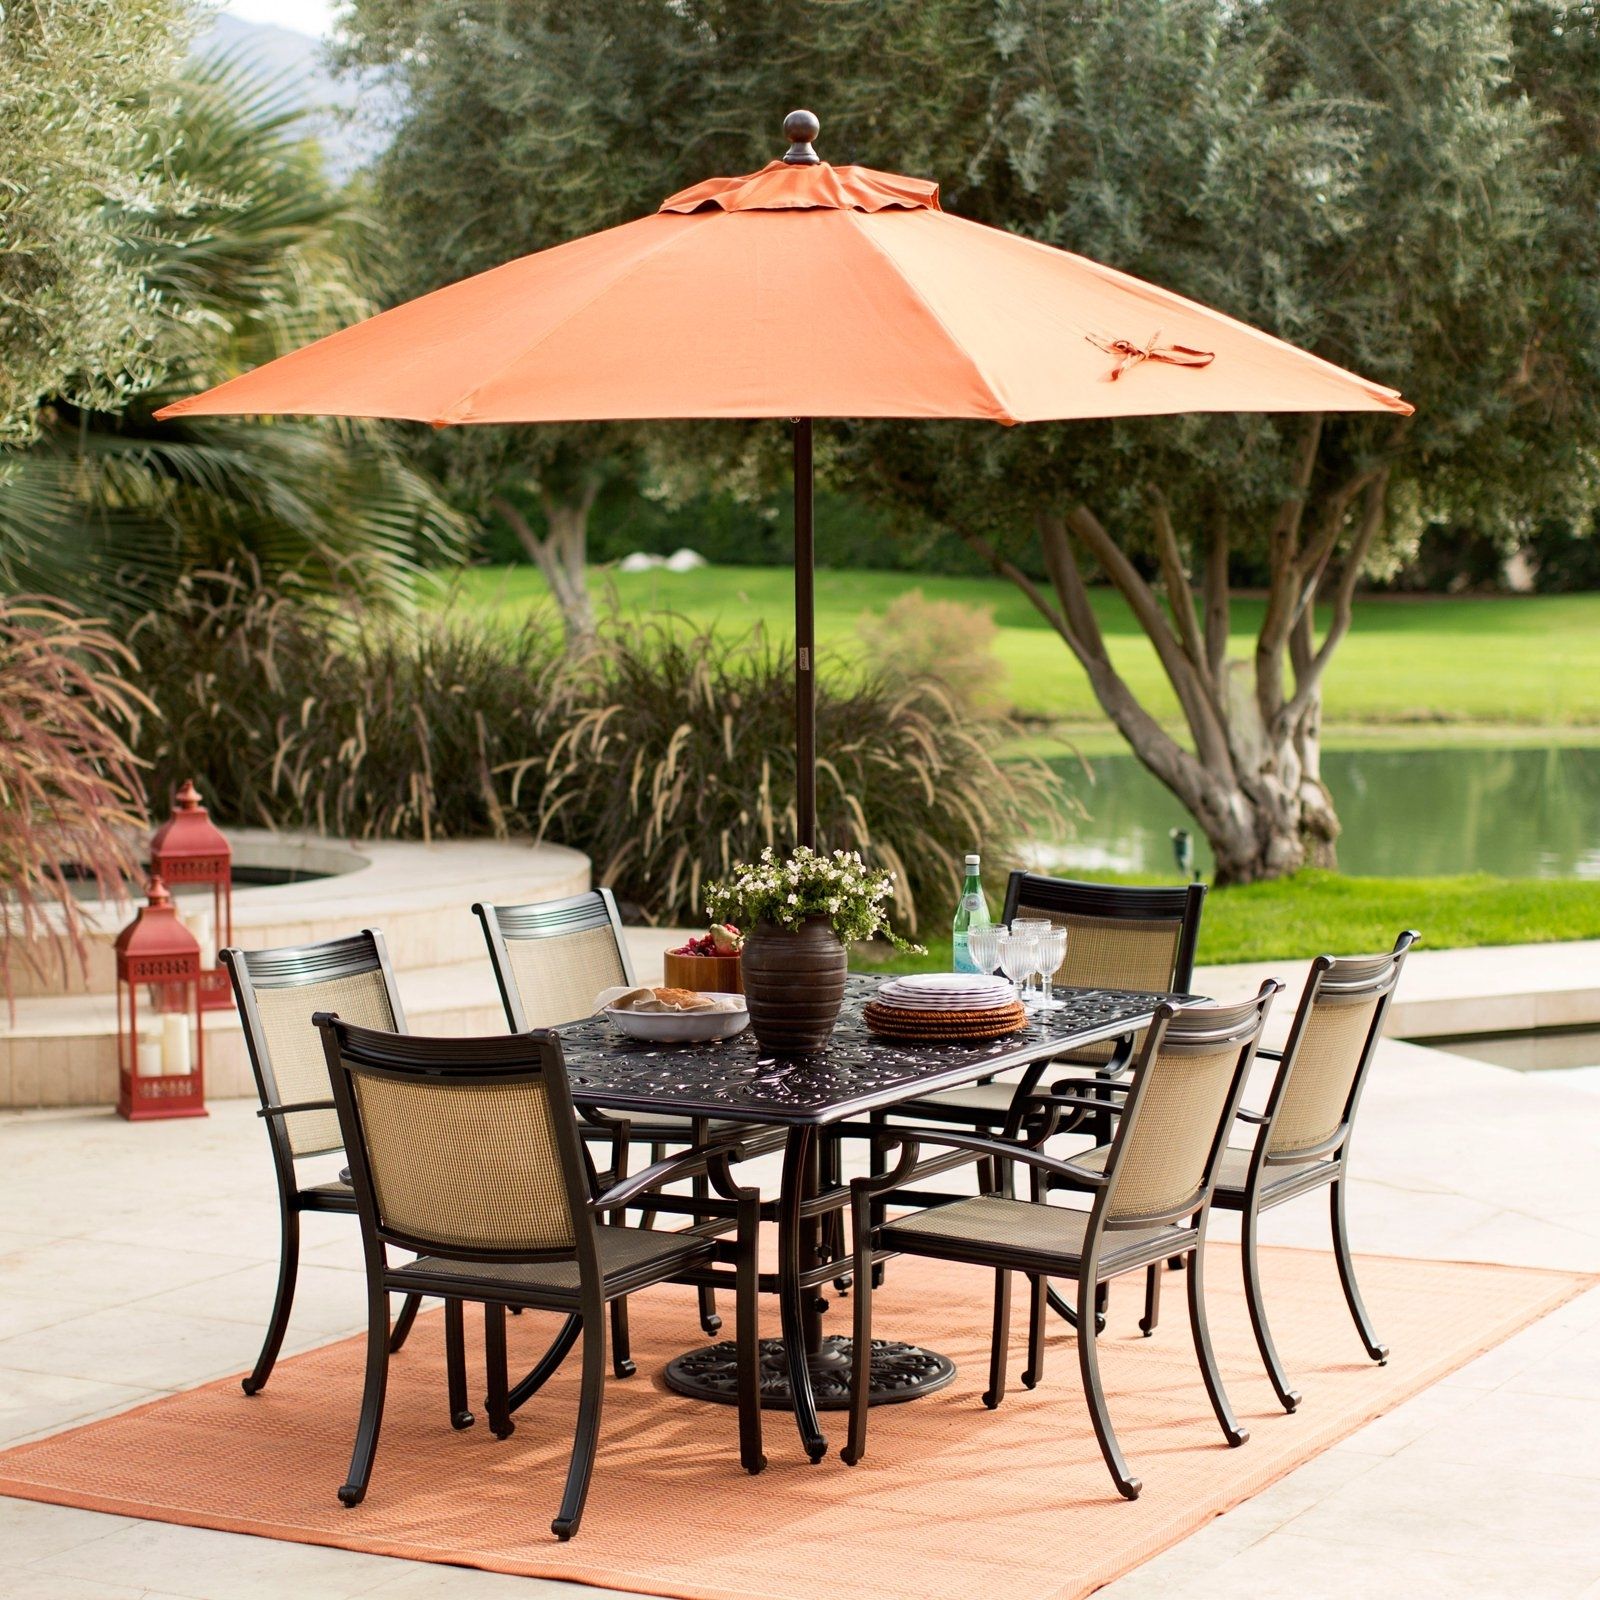 2018 Sunbrella Patio Umbrellas Pertaining To Coral Coast 9 Ft (View 1 of 20)